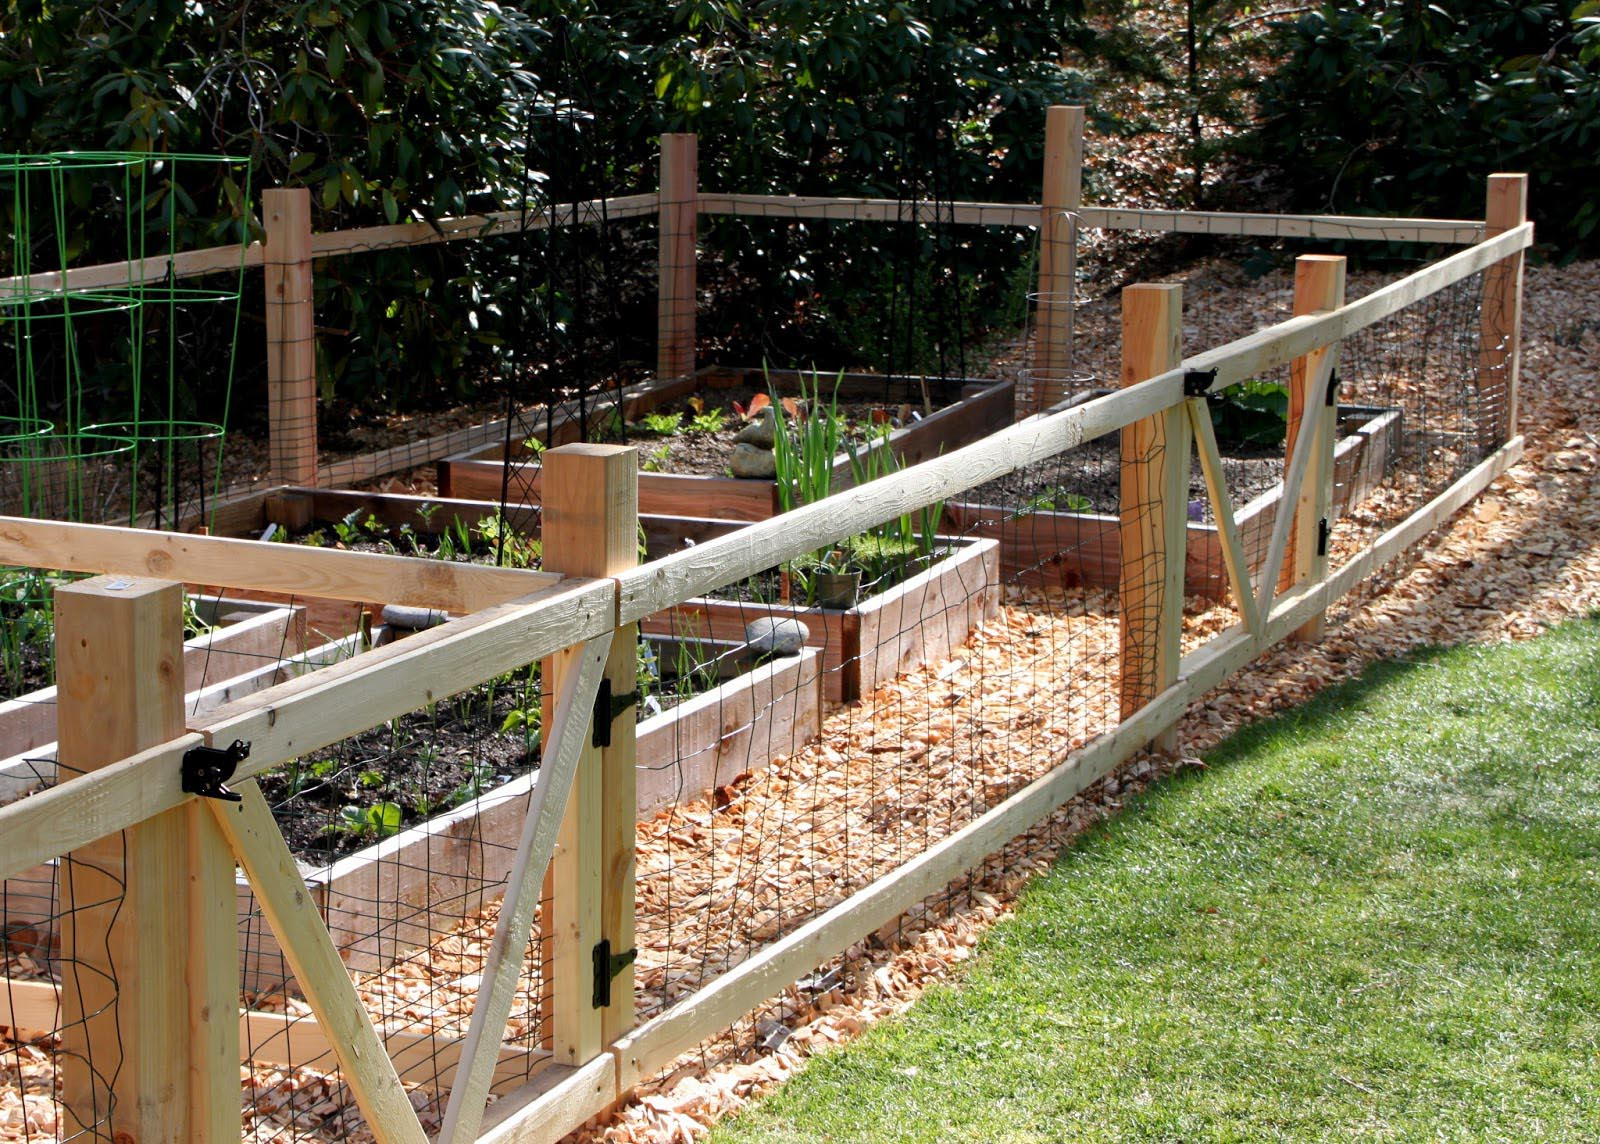 Building Fence Around Vegetable Garden